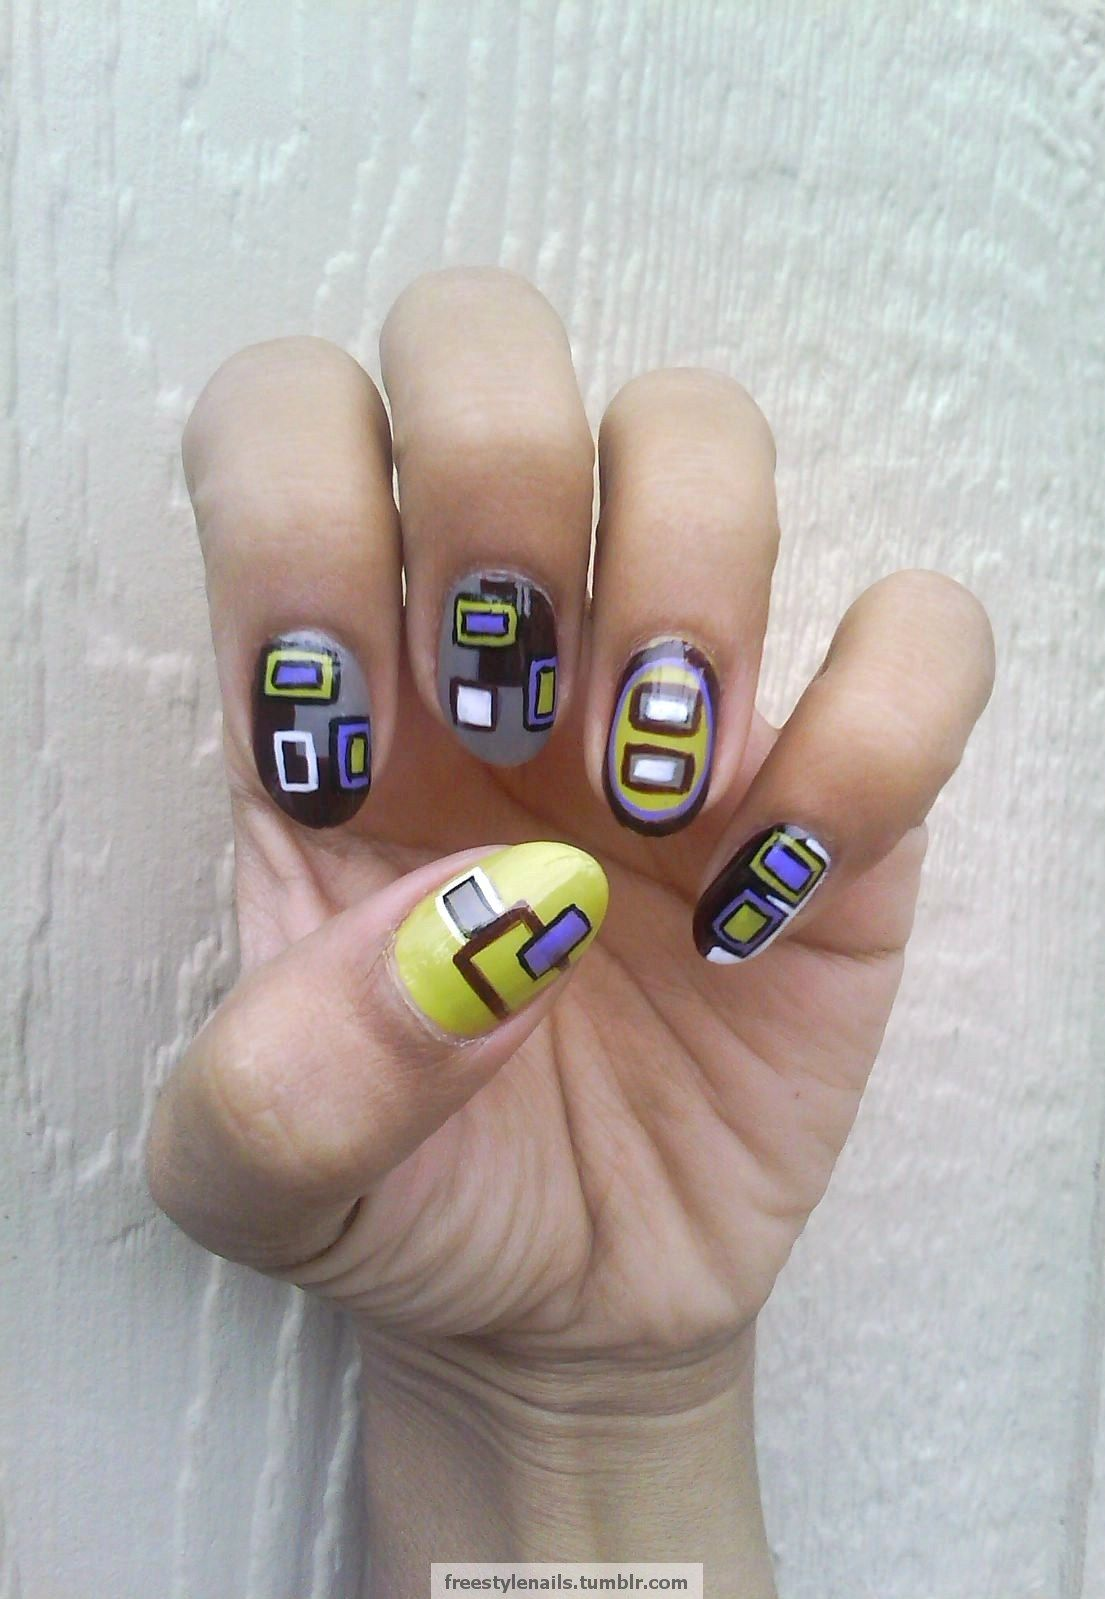 Freestyle Nails | nails | Pinterest